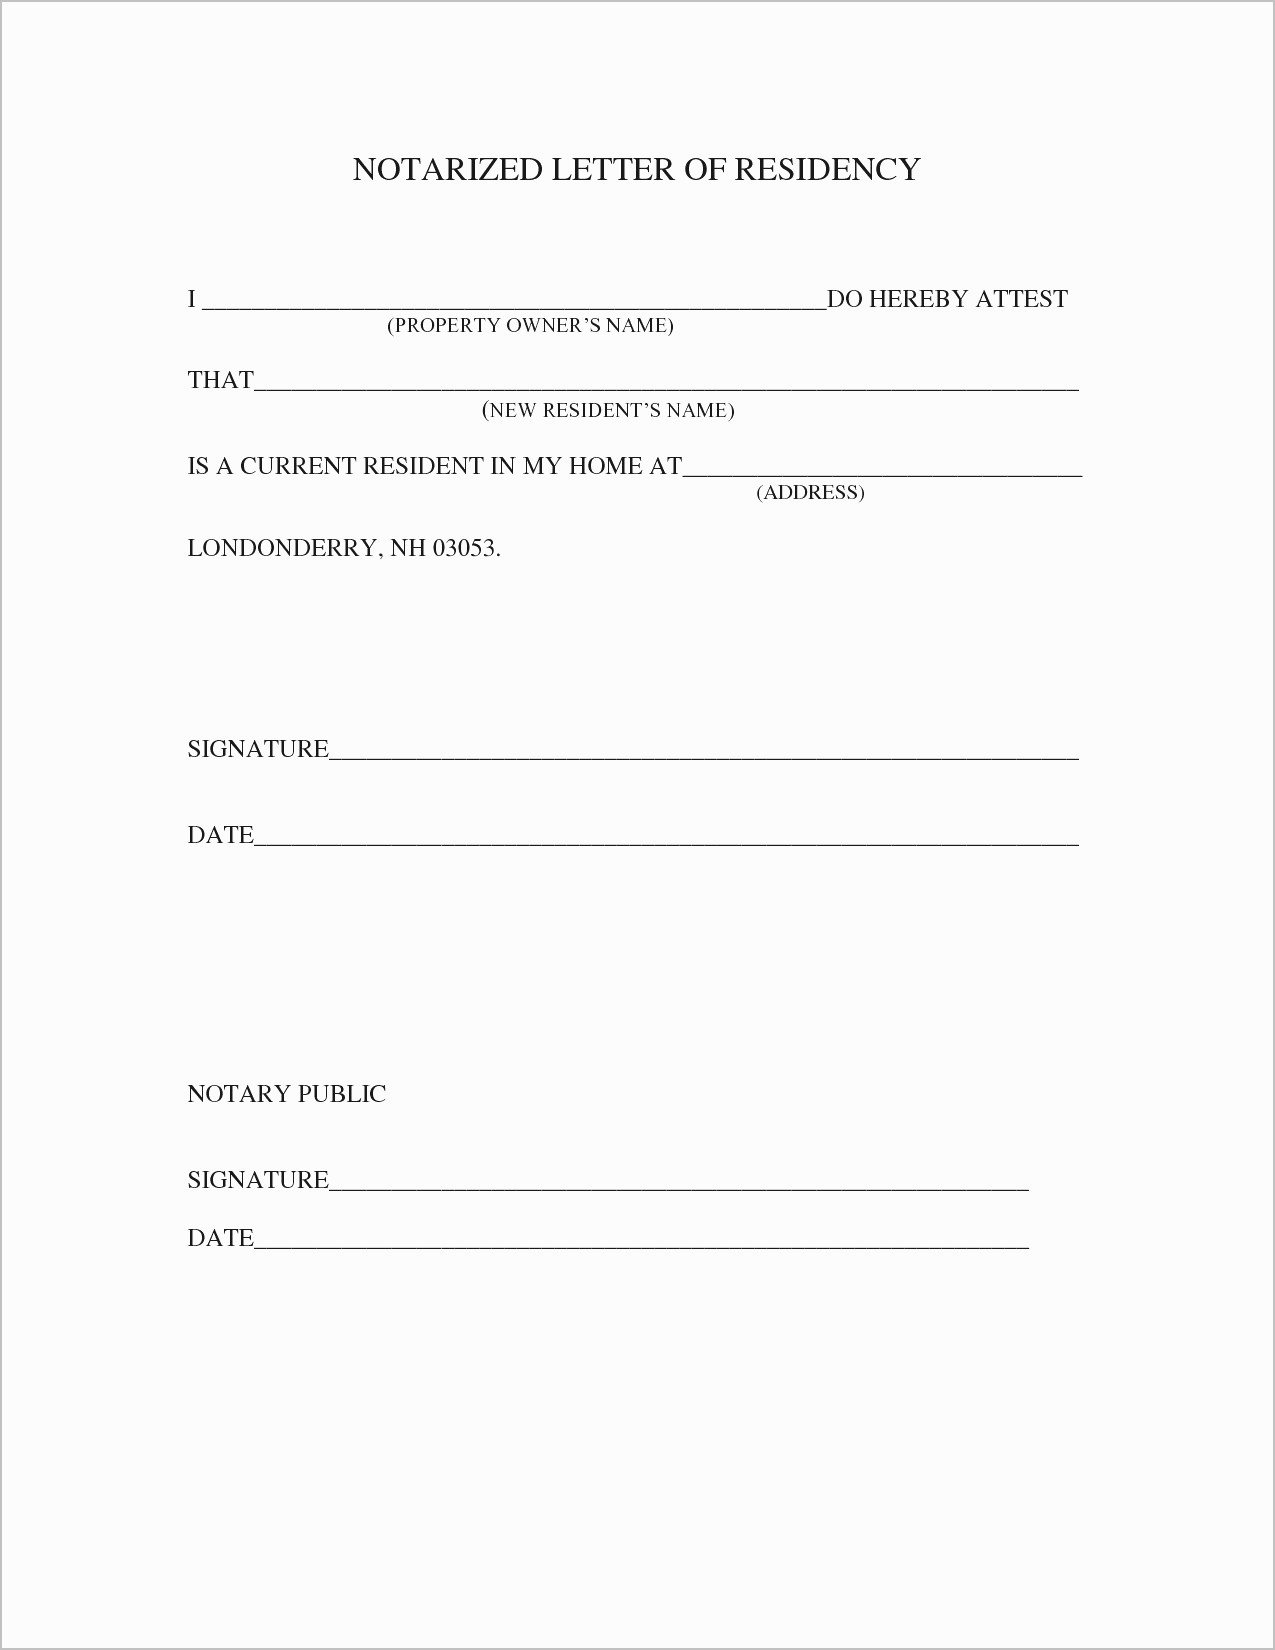 Printable Notarized Letter Of Residency Template Best Of Proof Residency Letter Notarized Template Samples